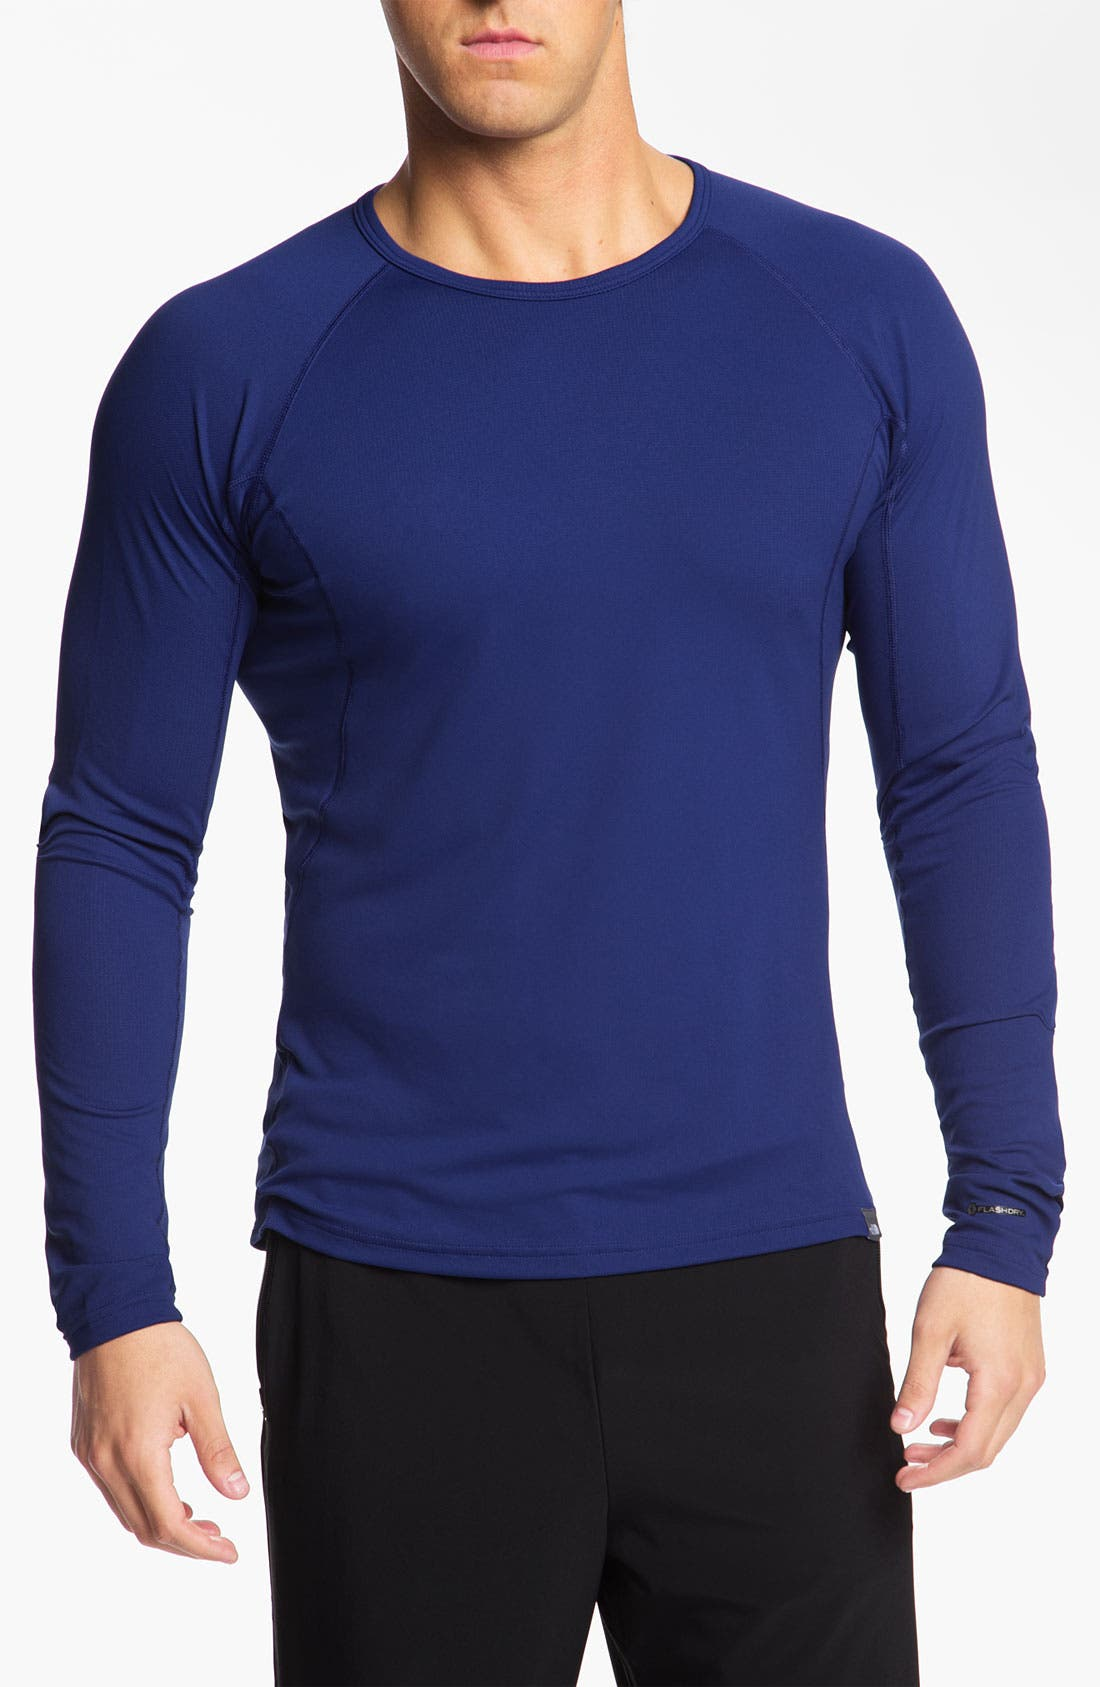 Alternate Image 1 Selected - The North Face HyActive™ Technical Crewneck T-Shirt (Online Only)